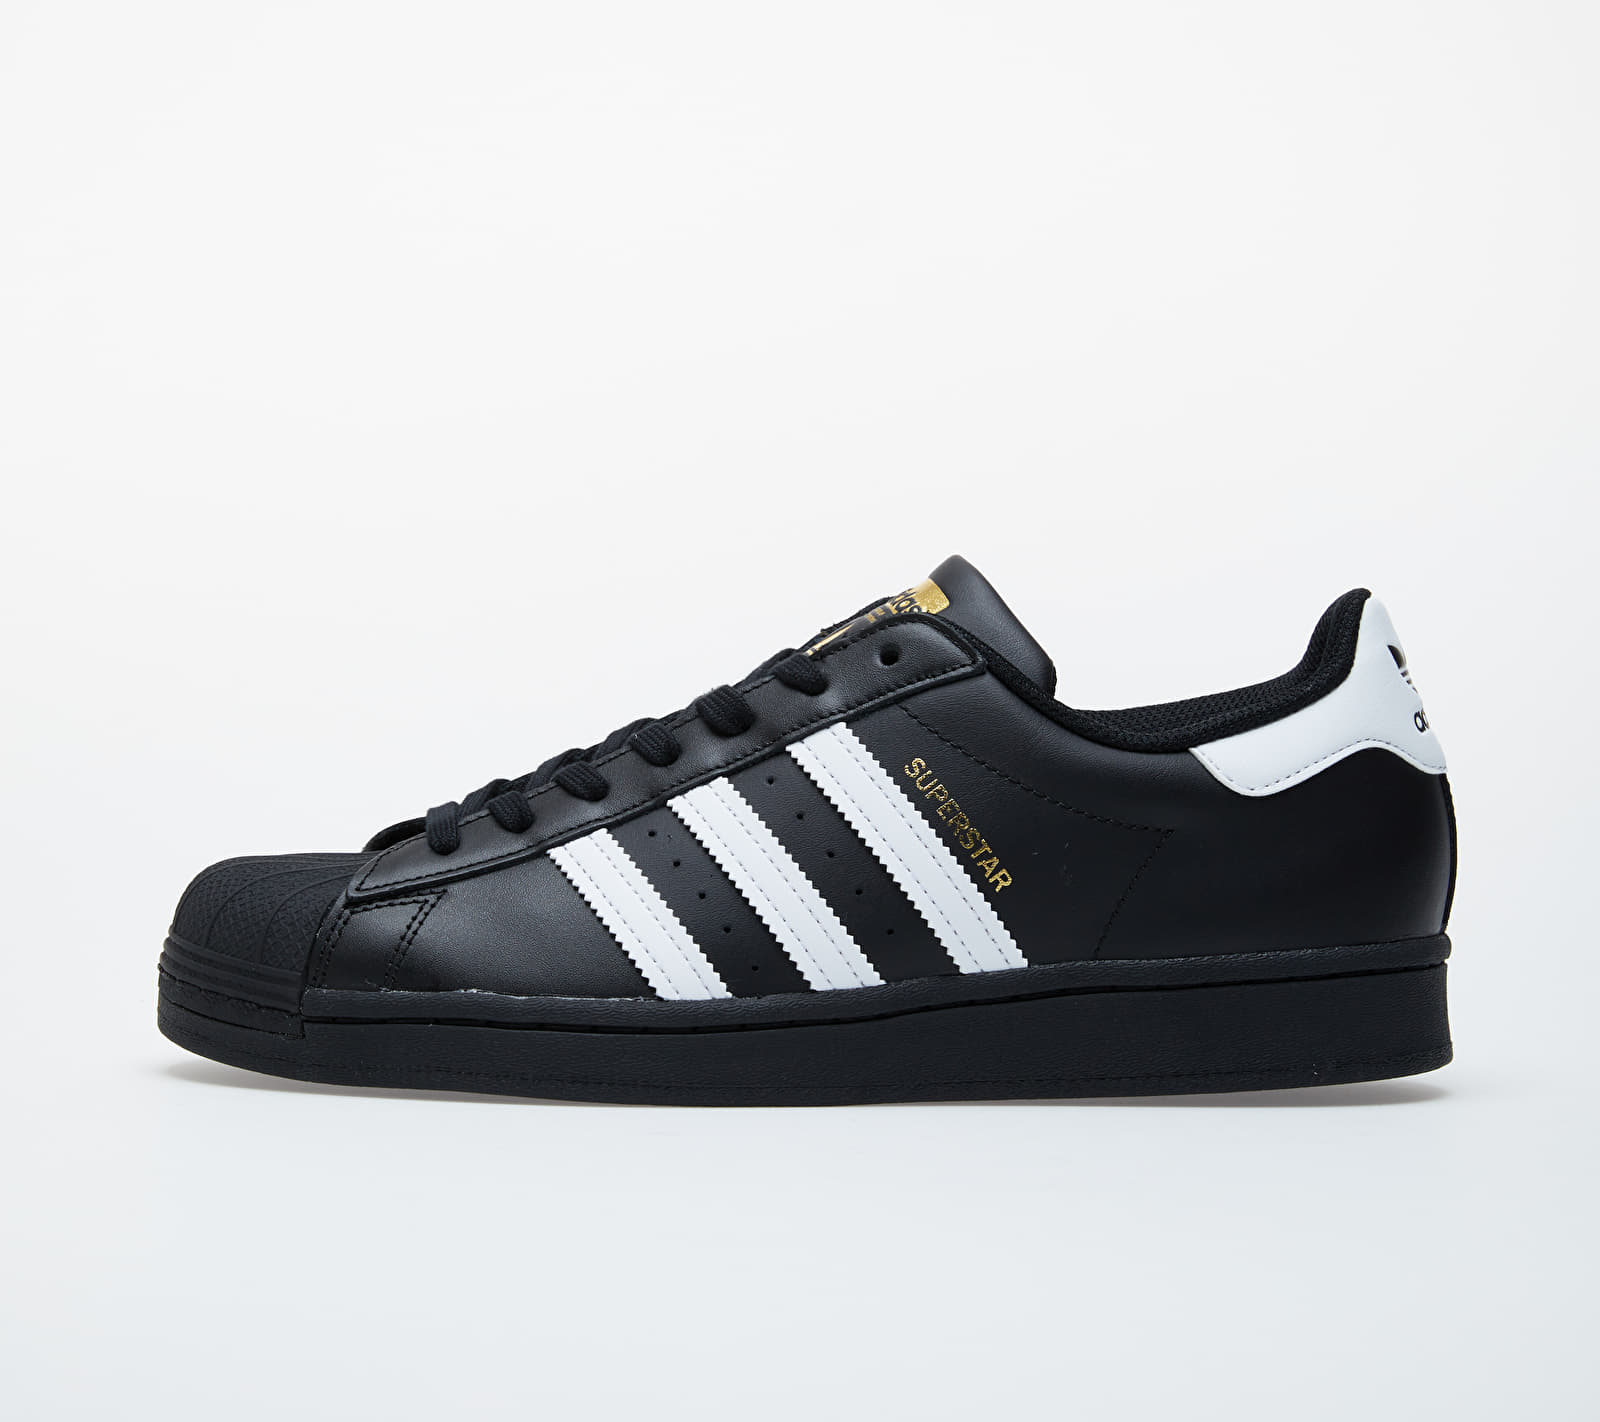 adidas Superstar Core Black/ Ftw White/ Core Black EUR 38